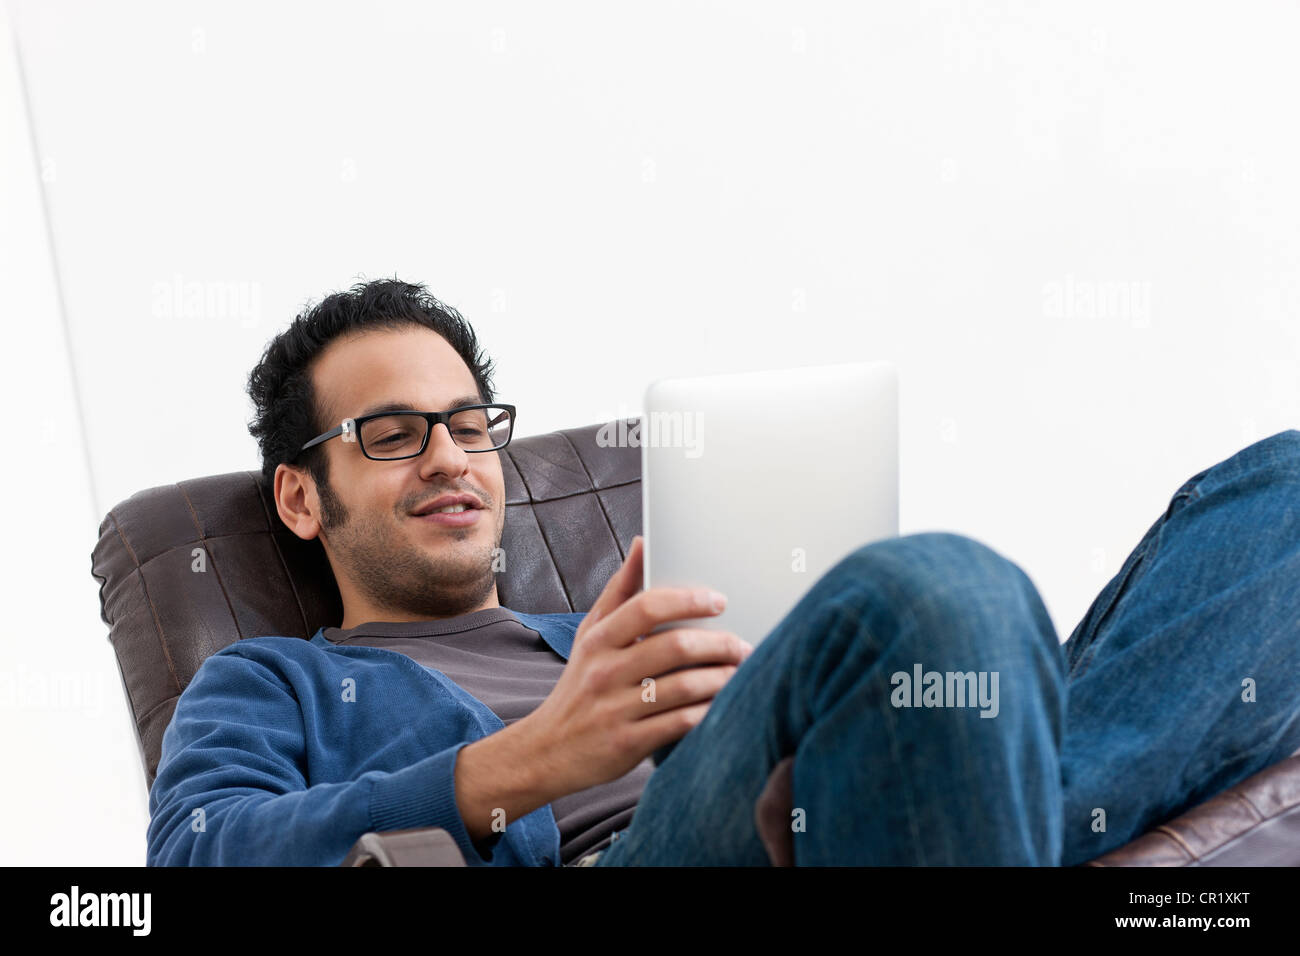 Smiling man using tablet computer - Stock Image